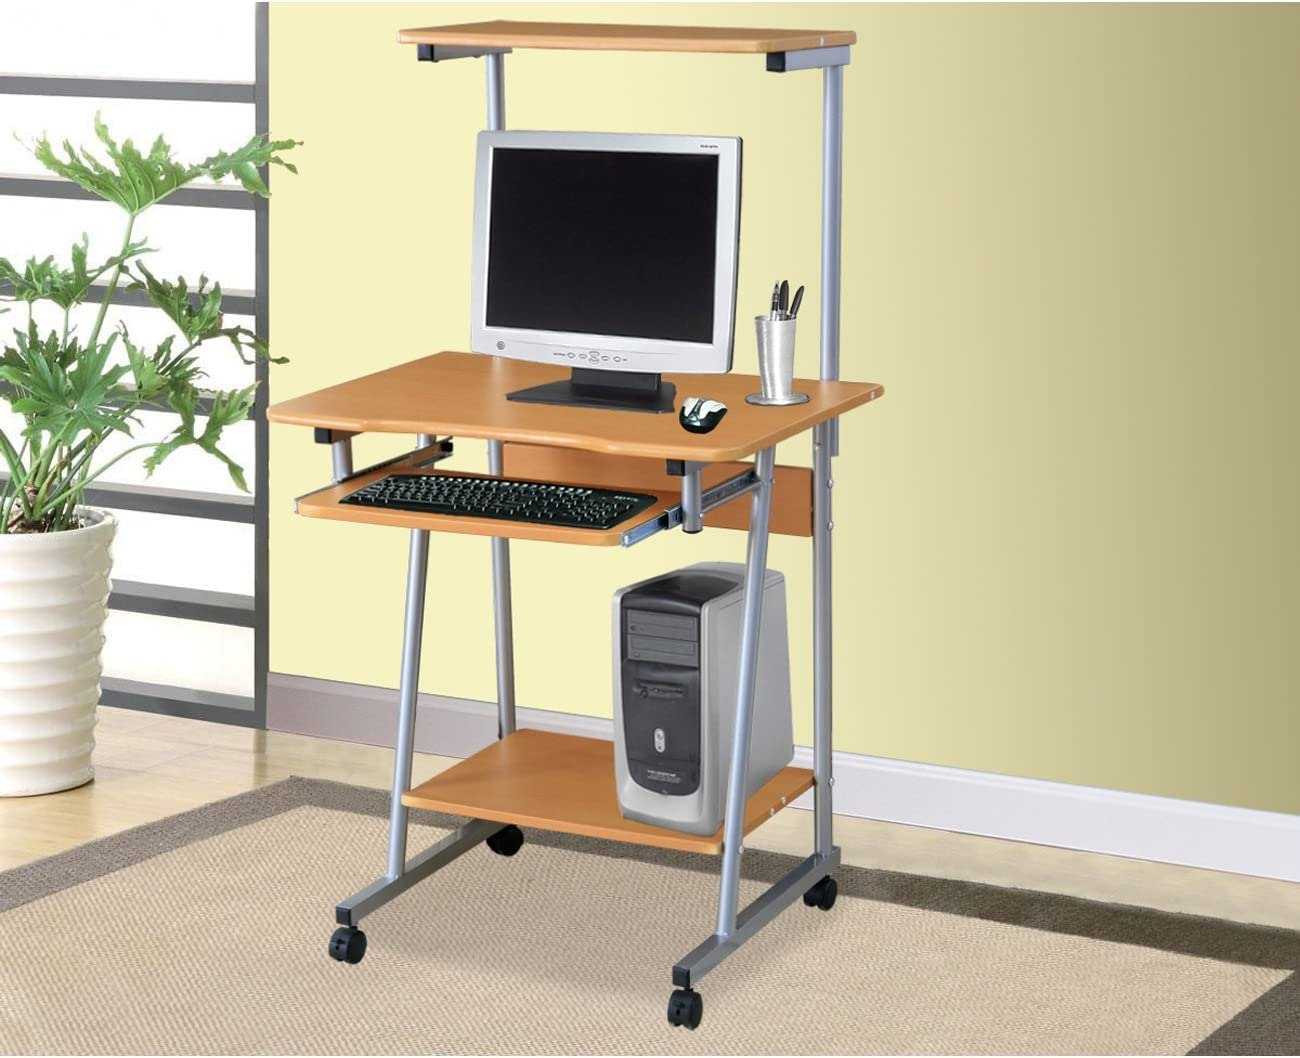 Home Source Industries Computer Cart, Cherry